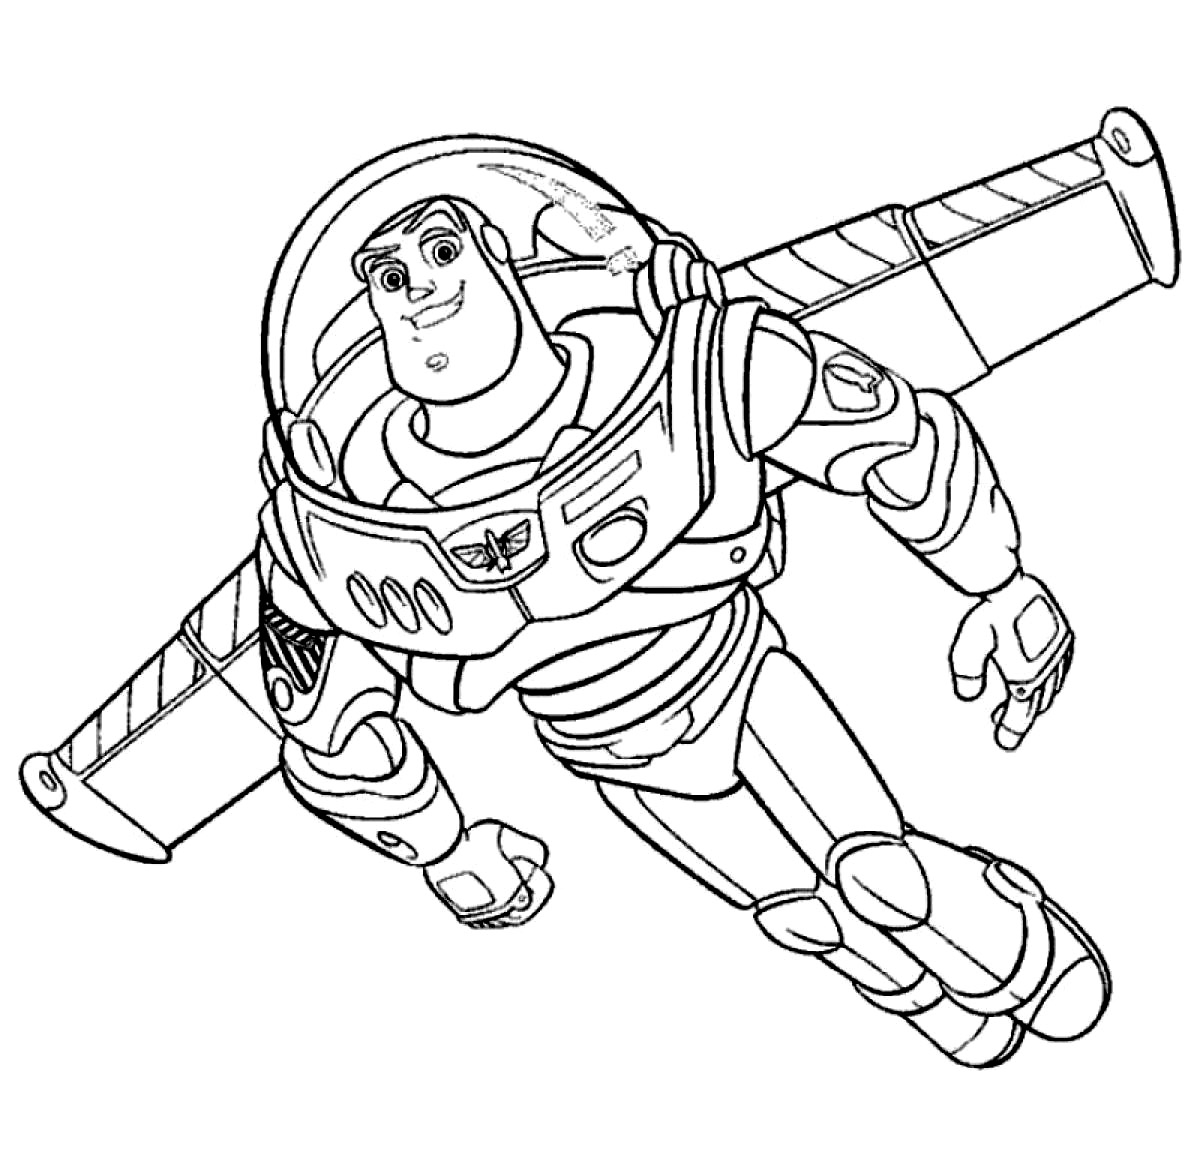 coloring pages of buzz lightyear free printable buzz lightyear coloring pages for kids pages lightyear of buzz coloring